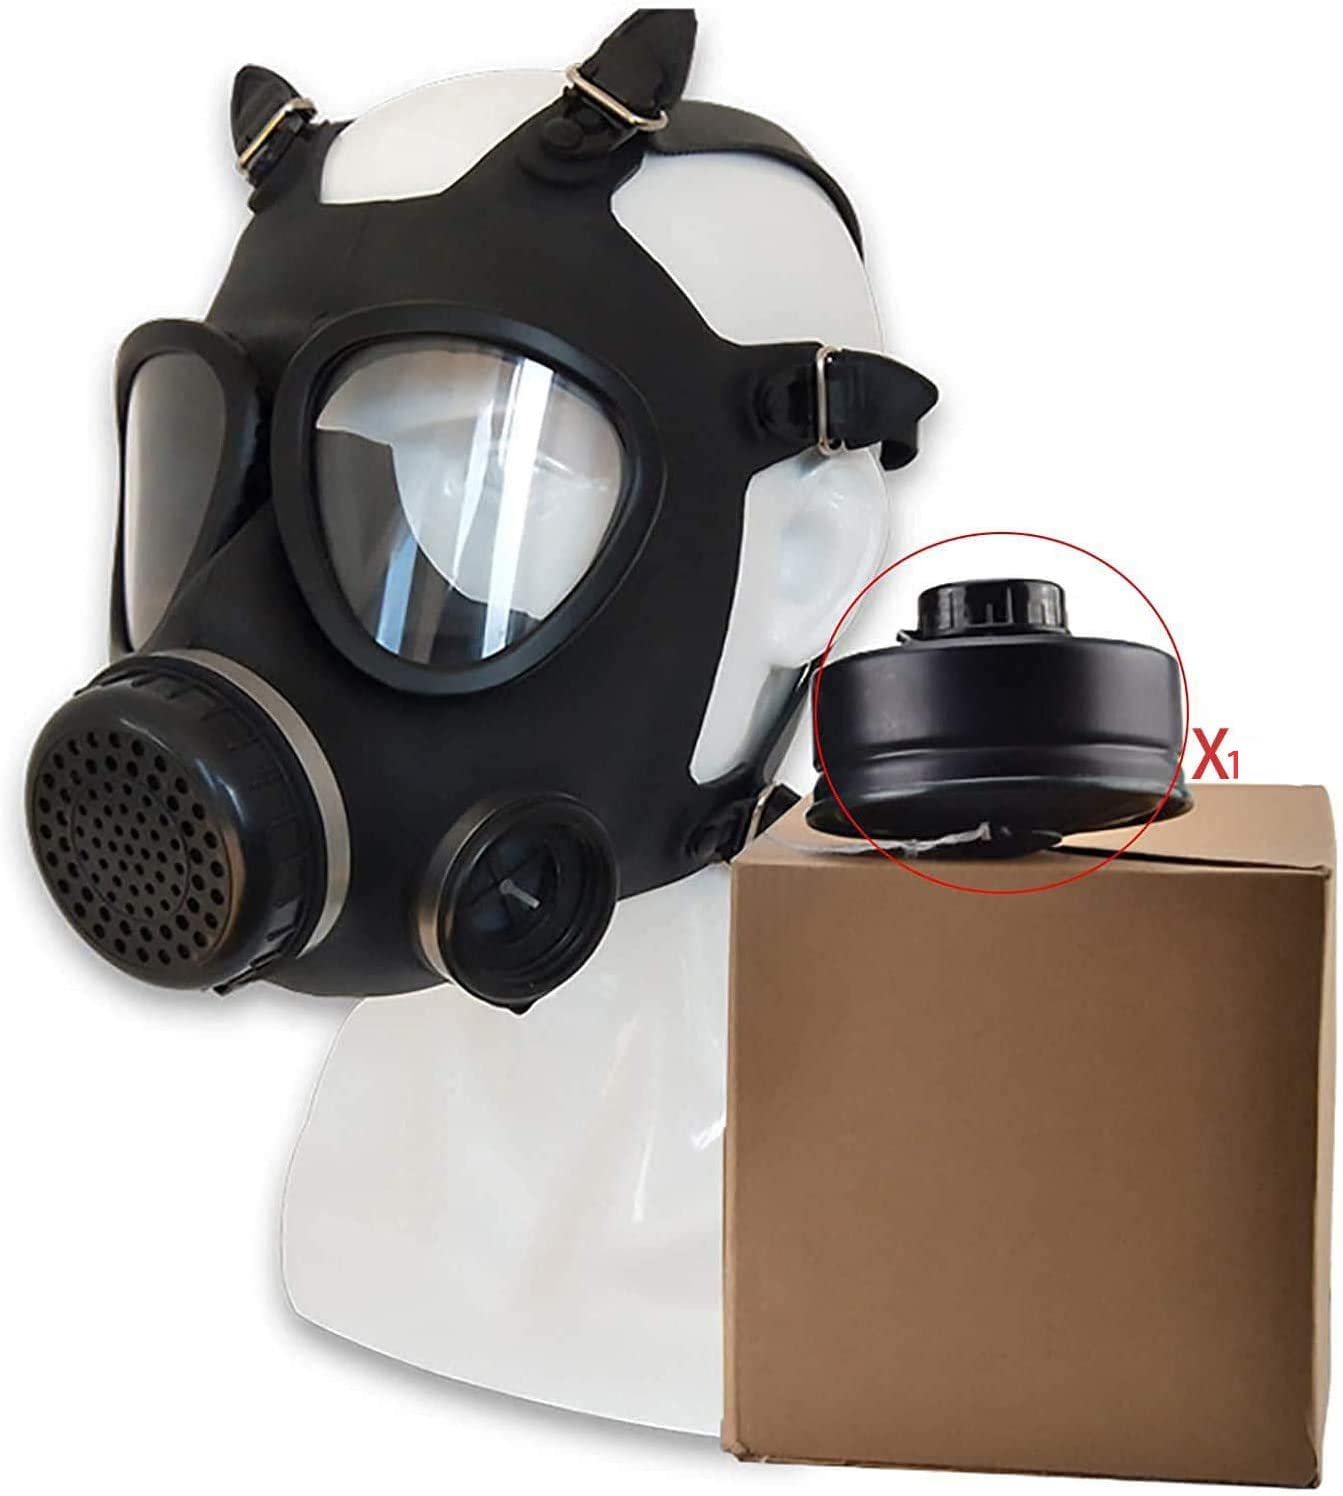 Full Face Gas Mask Respirator Protection With Canister Gas Reusable Widely Used In Organic Gas Paint Spary Chemical Woodworking Dust Amazon Ca Home Kitchen